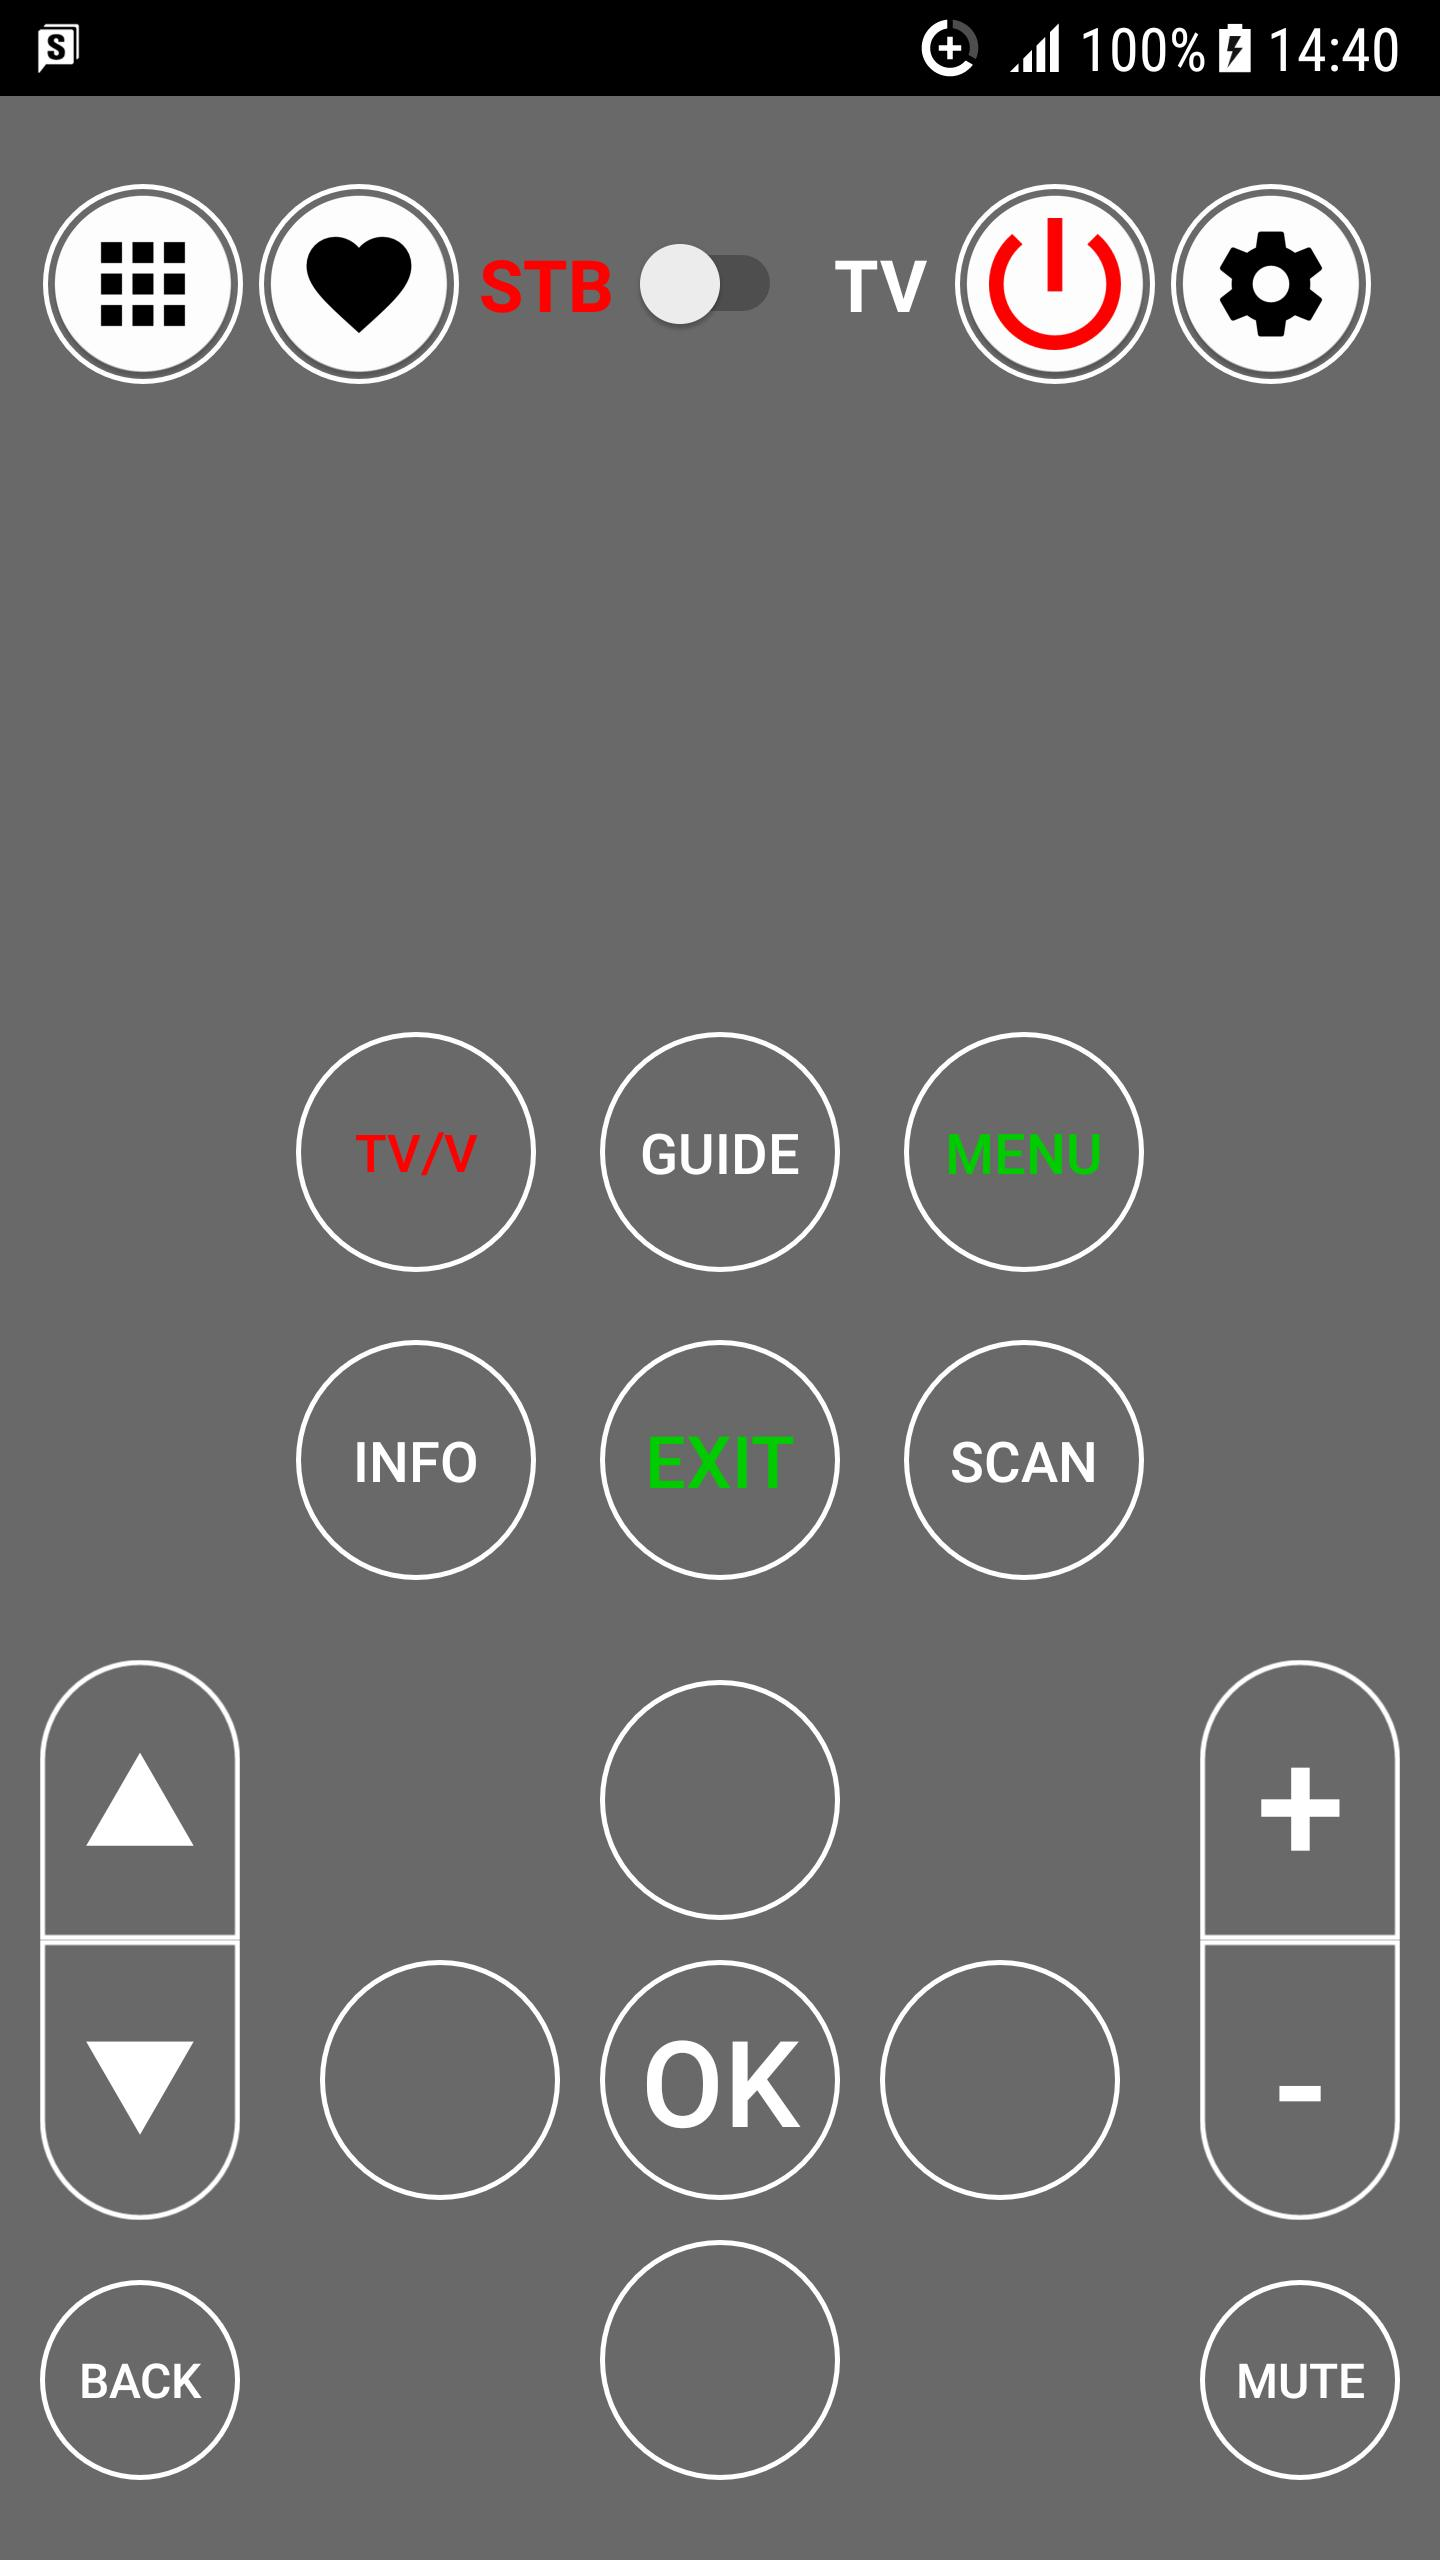 MK Remote Control for Android - APK Download